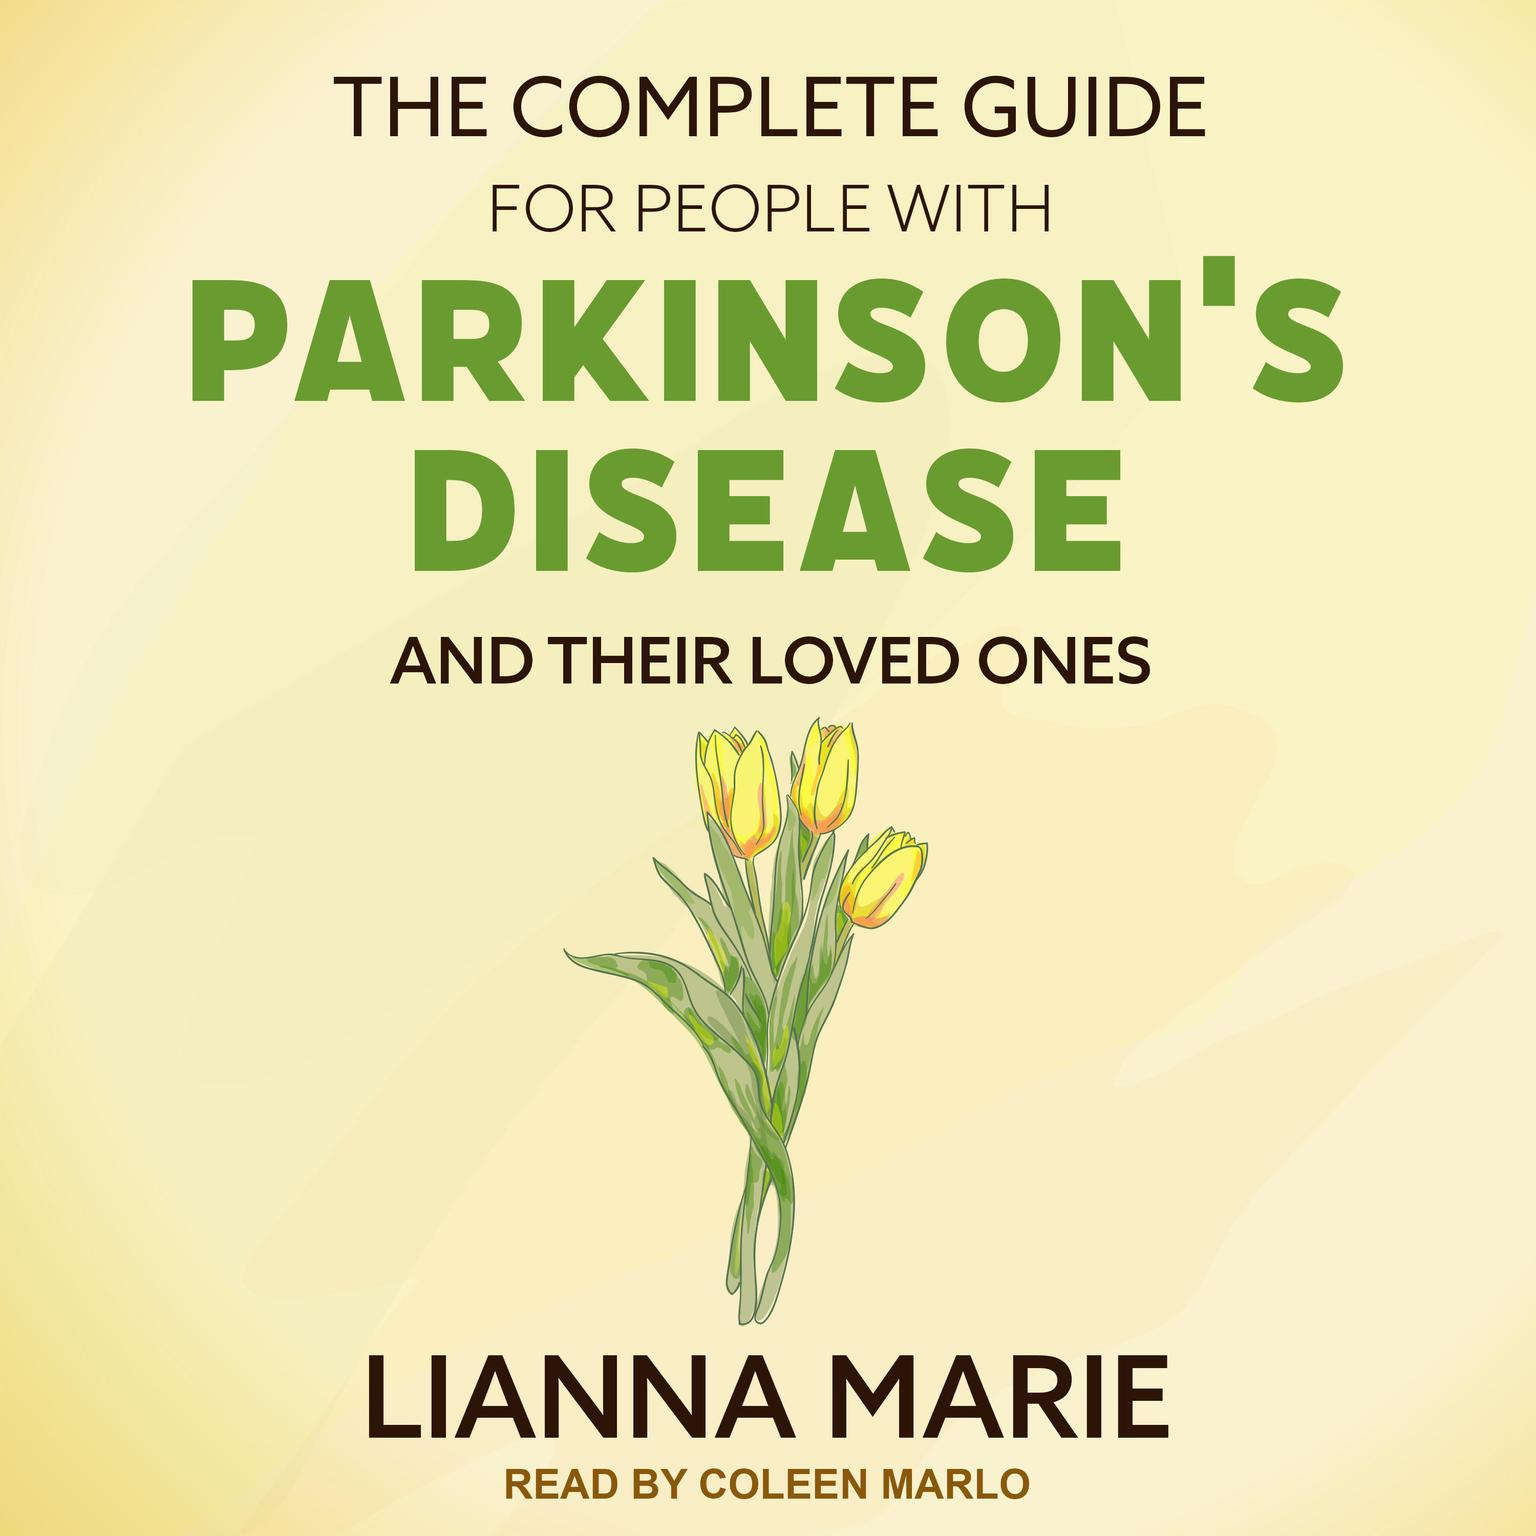 The Complete Guide for People With Parkinsons Disease and Their Loved Ones Audiobook, by Lianna Marie